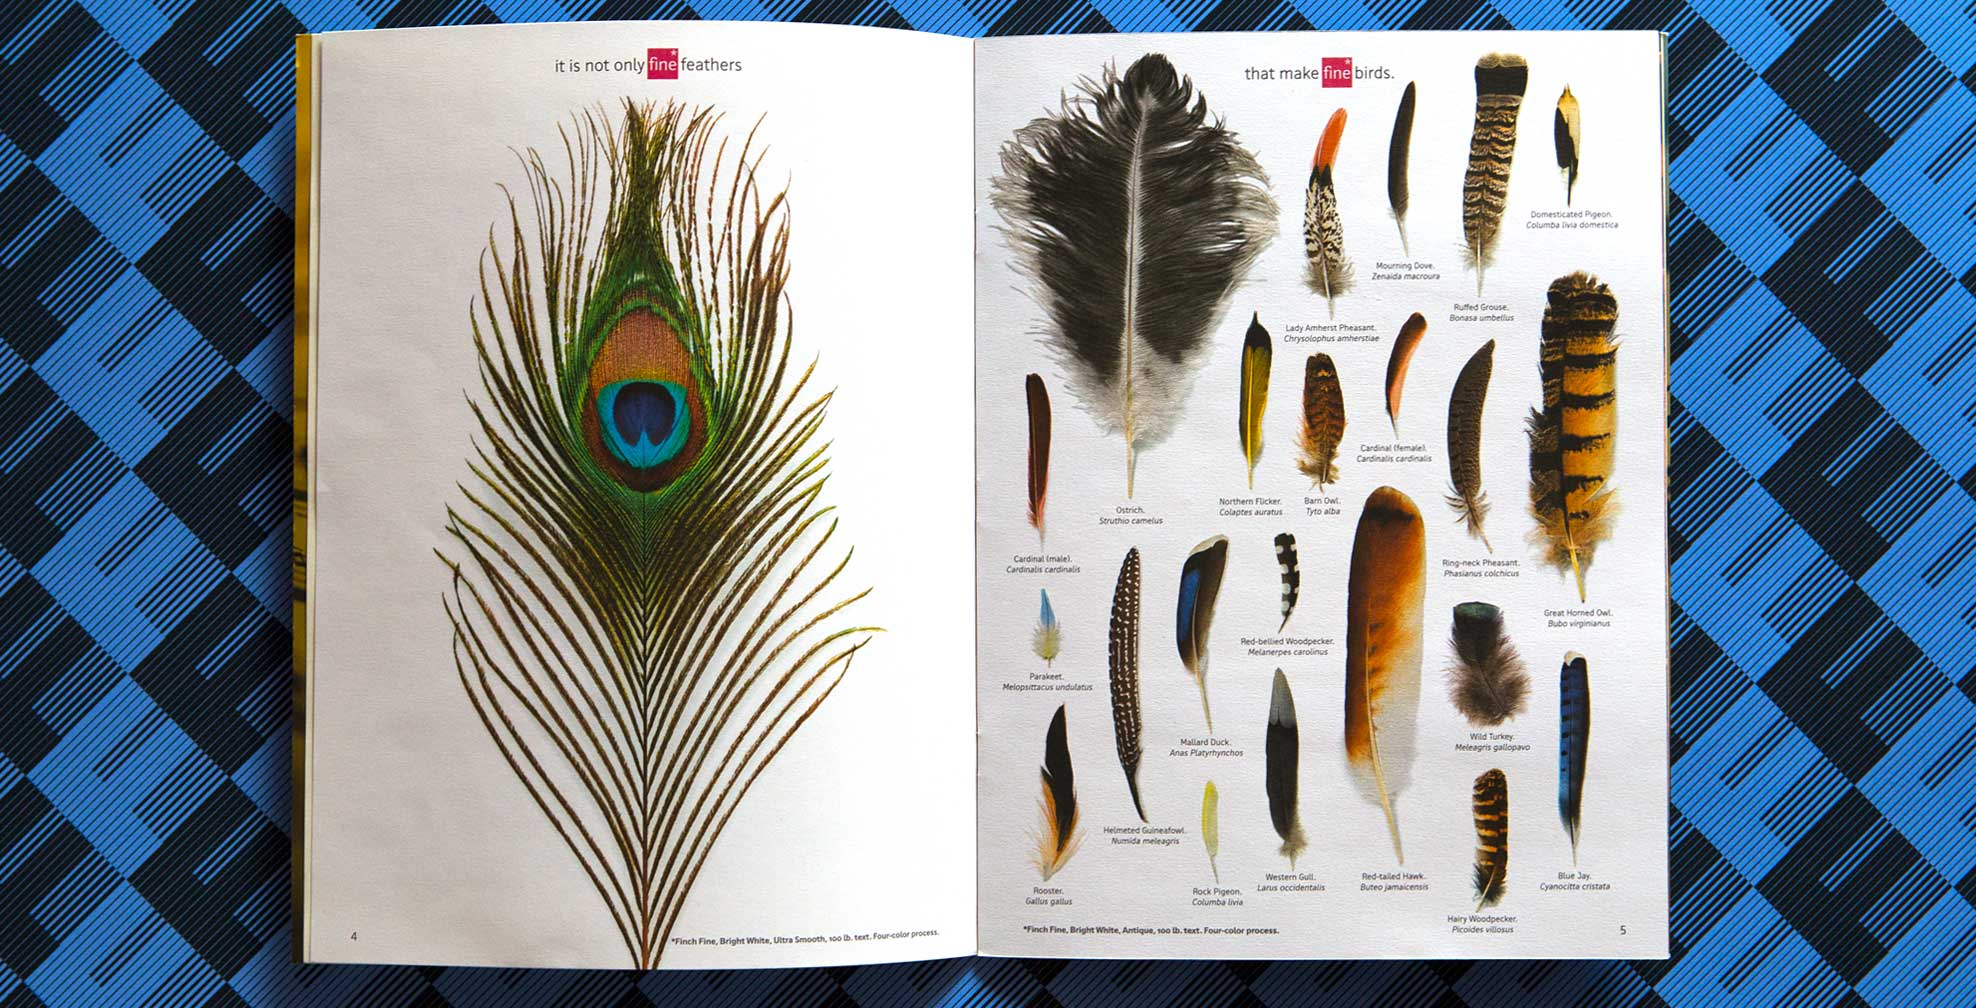 fine feathers make fine birds essays Free essays on it is not only feathers that make fine birds get help with your writing 1 through 30.